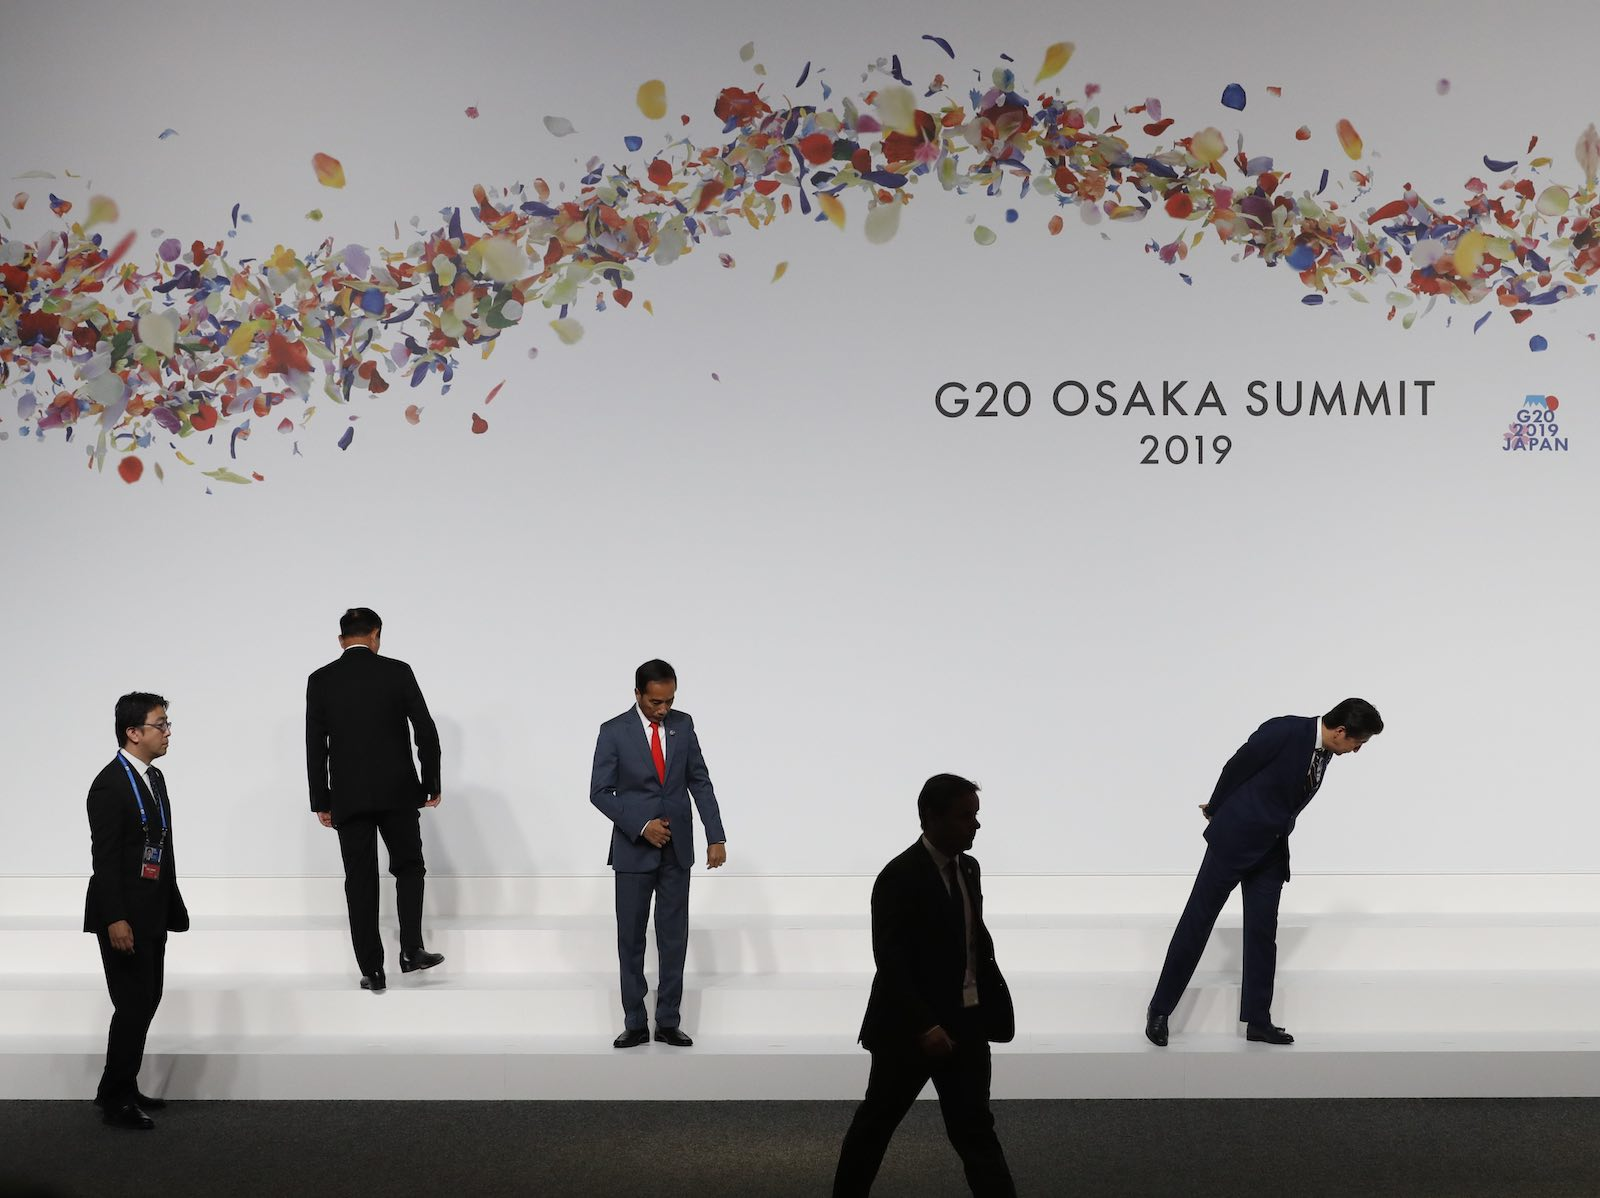 Indonesian President Joko Widodo and Japanese Prime Minister Shinzo Abe check their positions before a photo session at the G20 summit (Photo: Kim Kyung-Hoon via Getty)